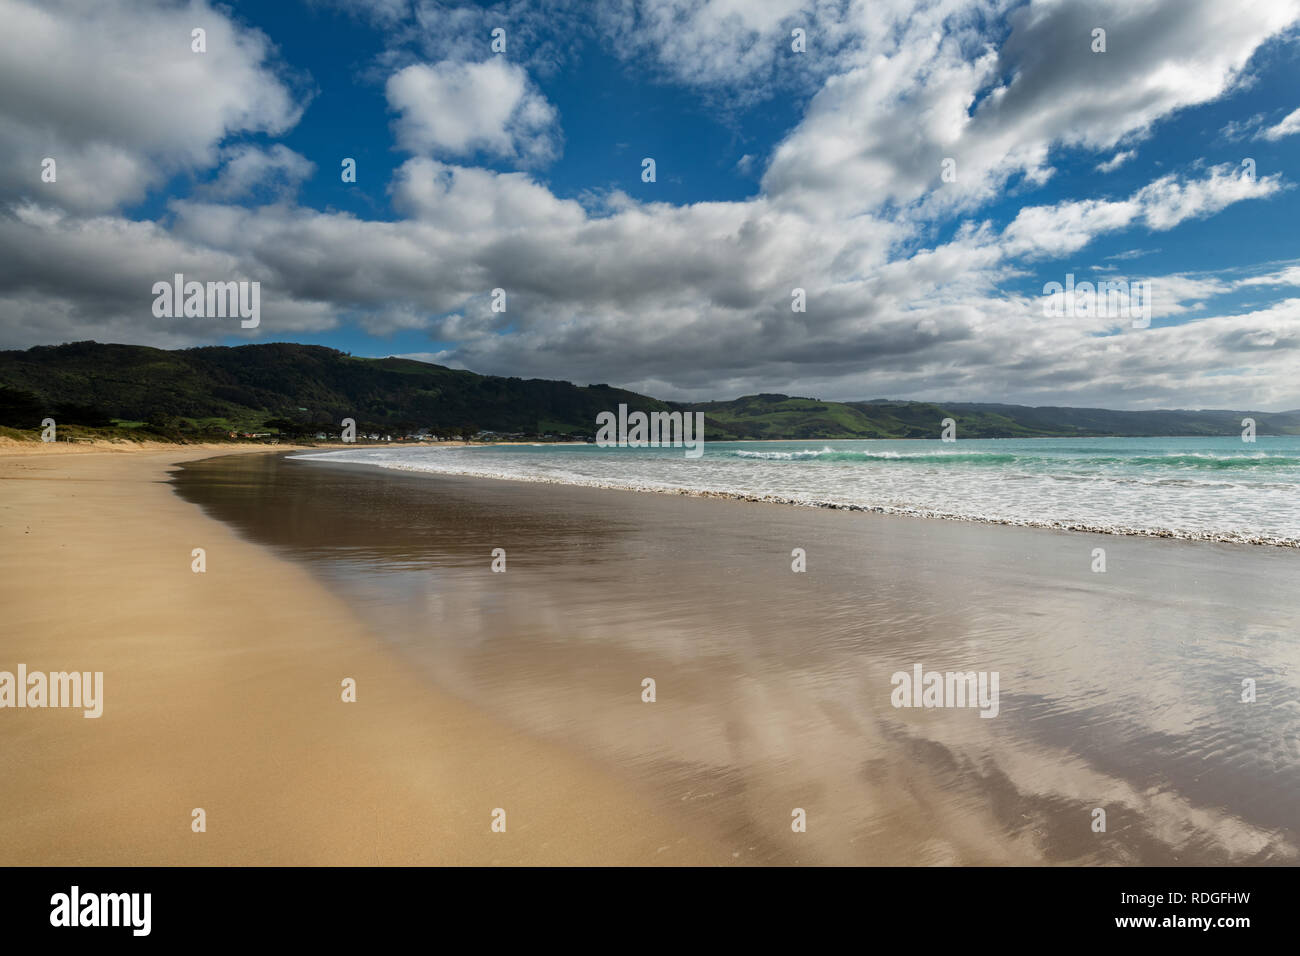 Apollo Bay Beach at the famous Great Ocean Road. - Stock Image